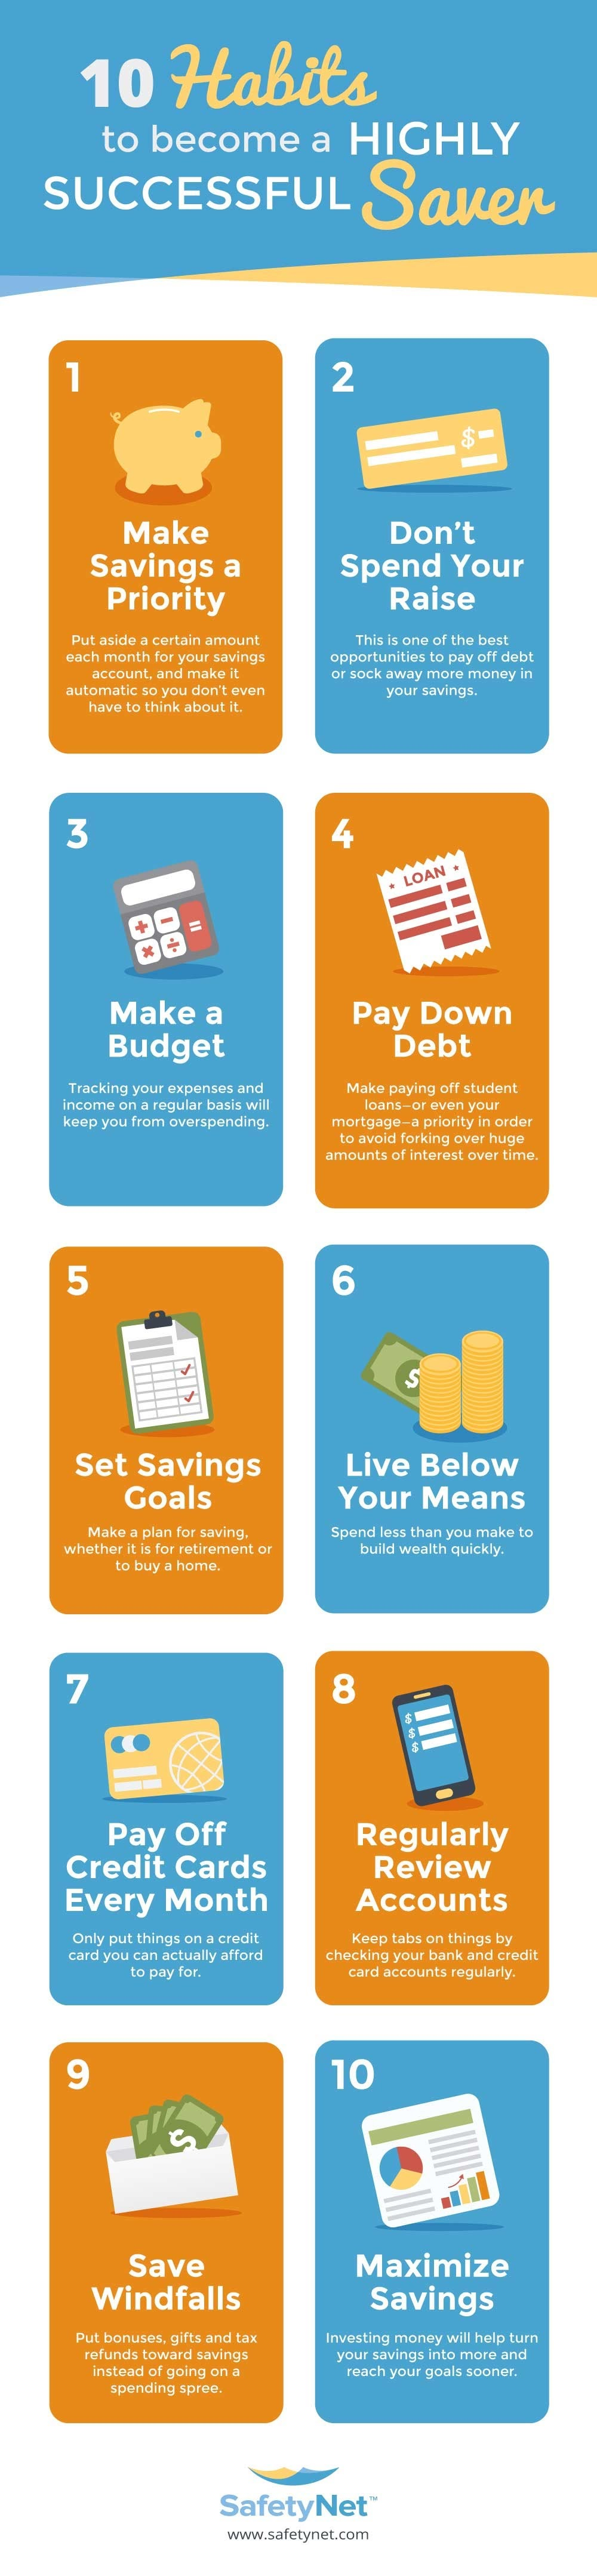 10 Habits To Become a Highly Successful Saver #Infographic